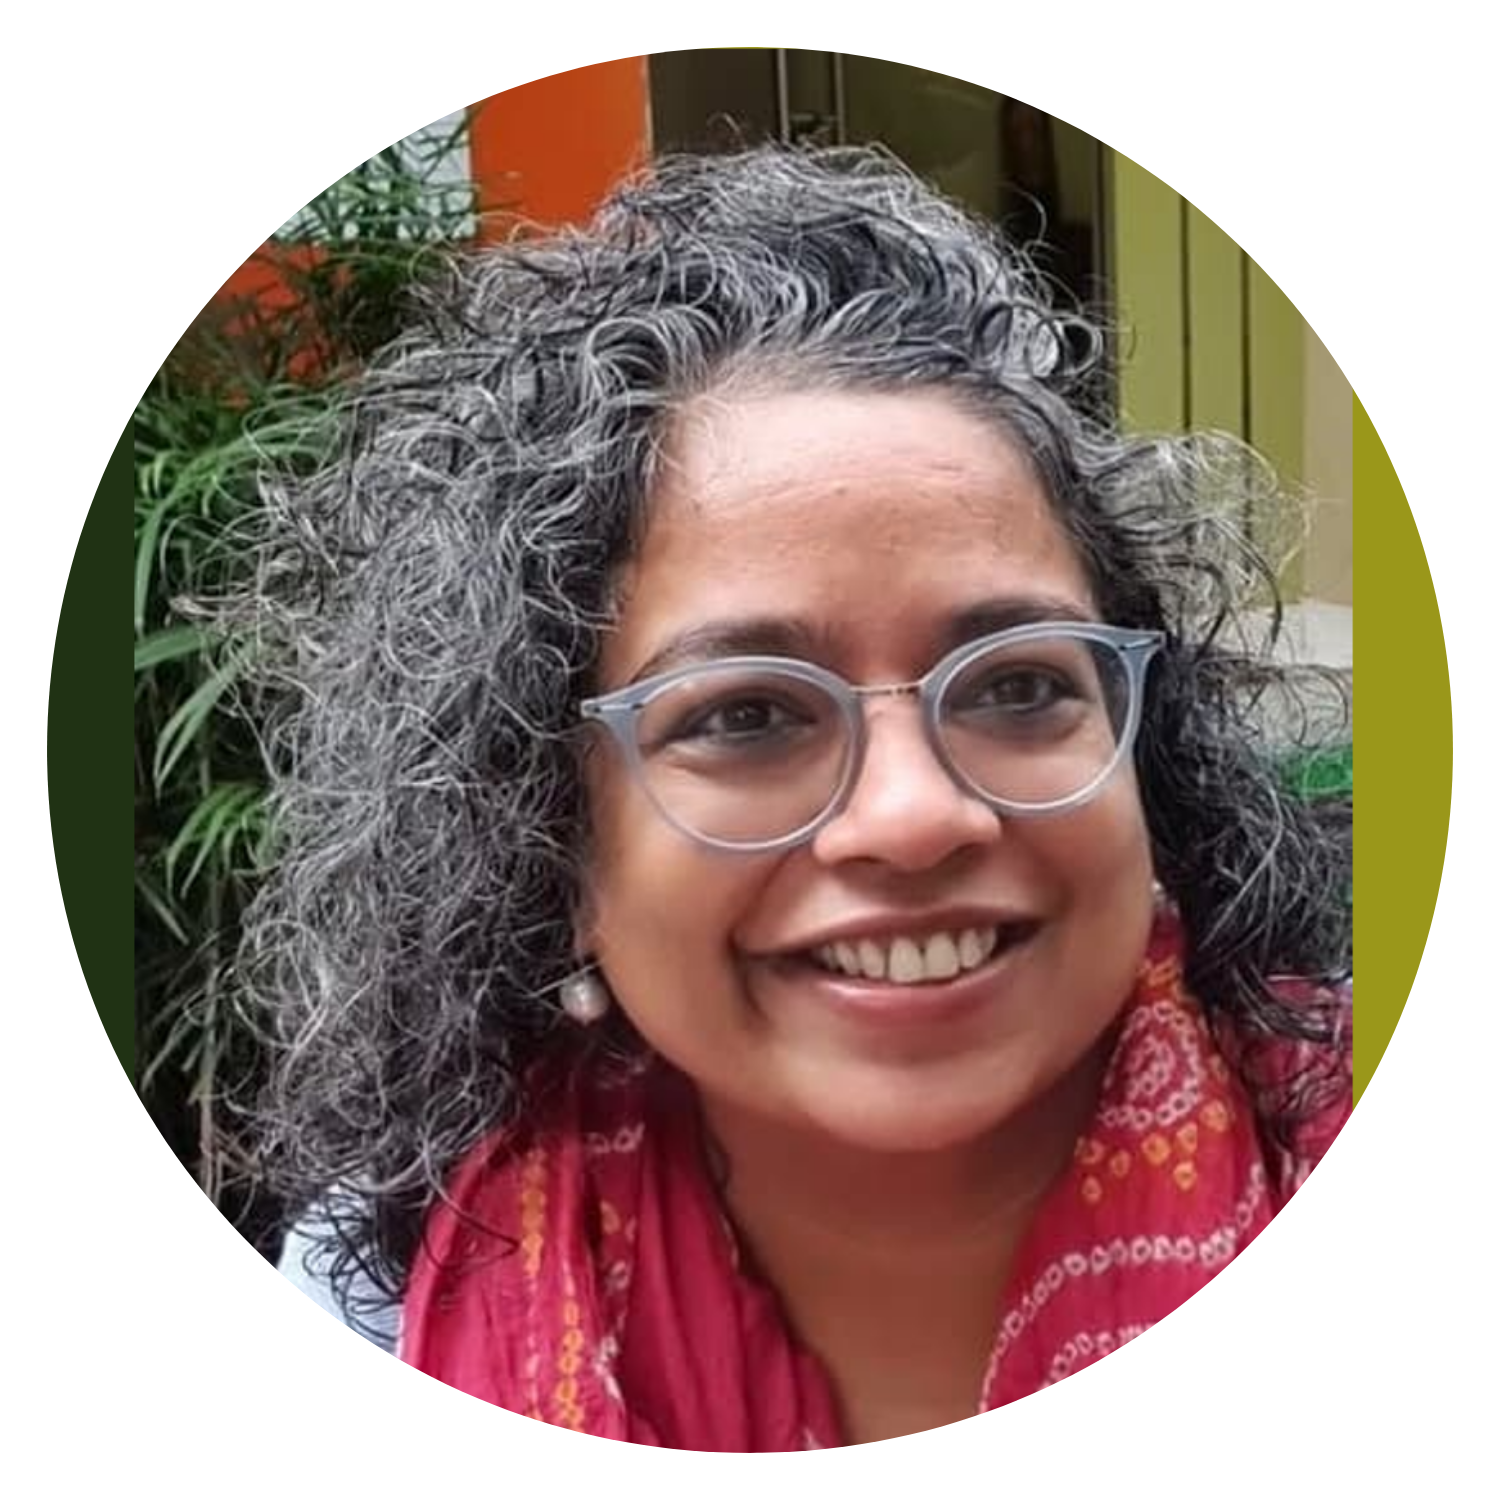 Ms. Vani Saraswathi, Associate Editor and Director of Projects, Migrant-Rights.org